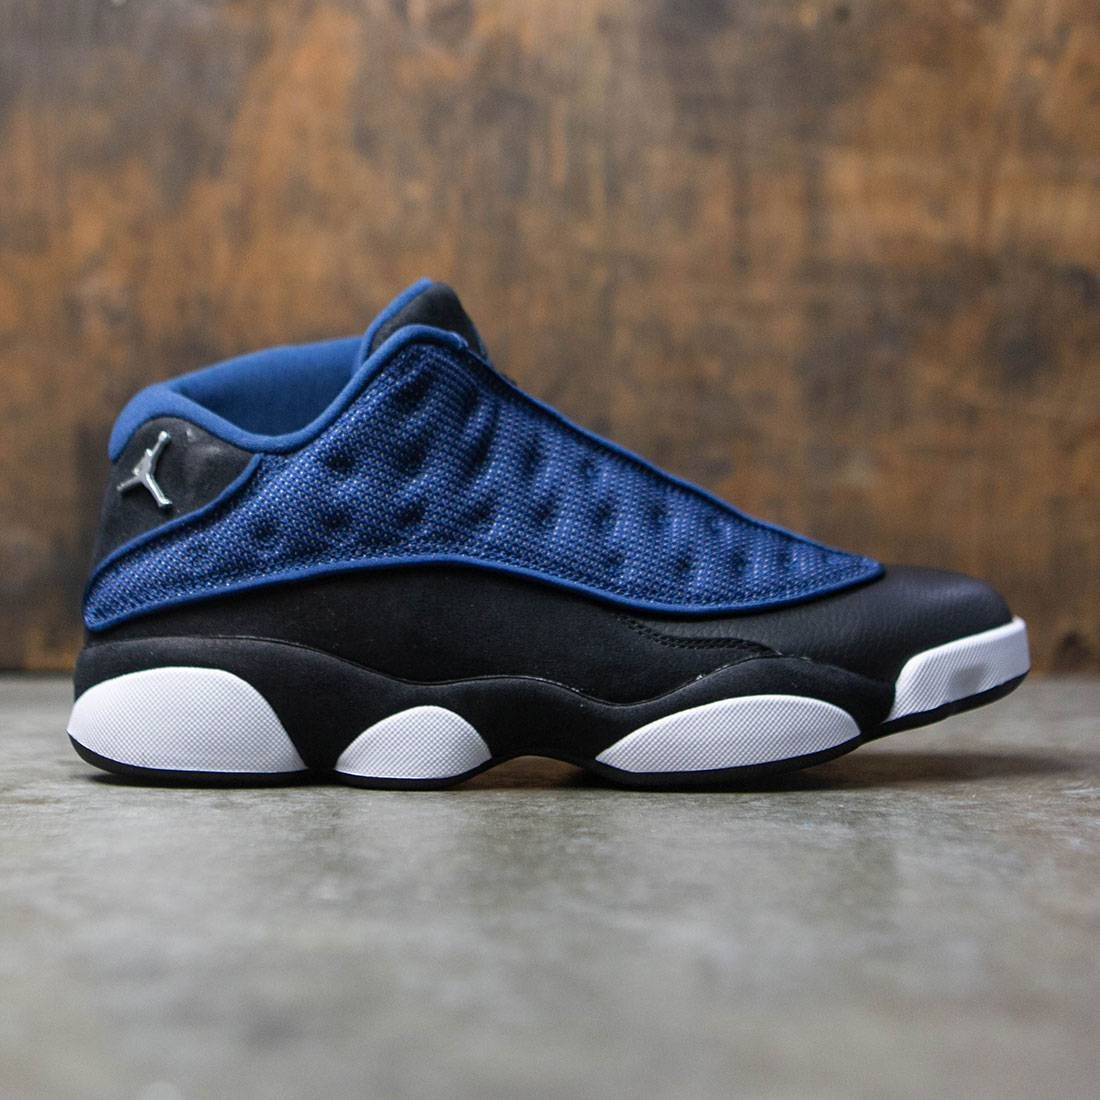 f141180c694480 jordan men air jordan 13 retro low blue brave blue metalllic silver black